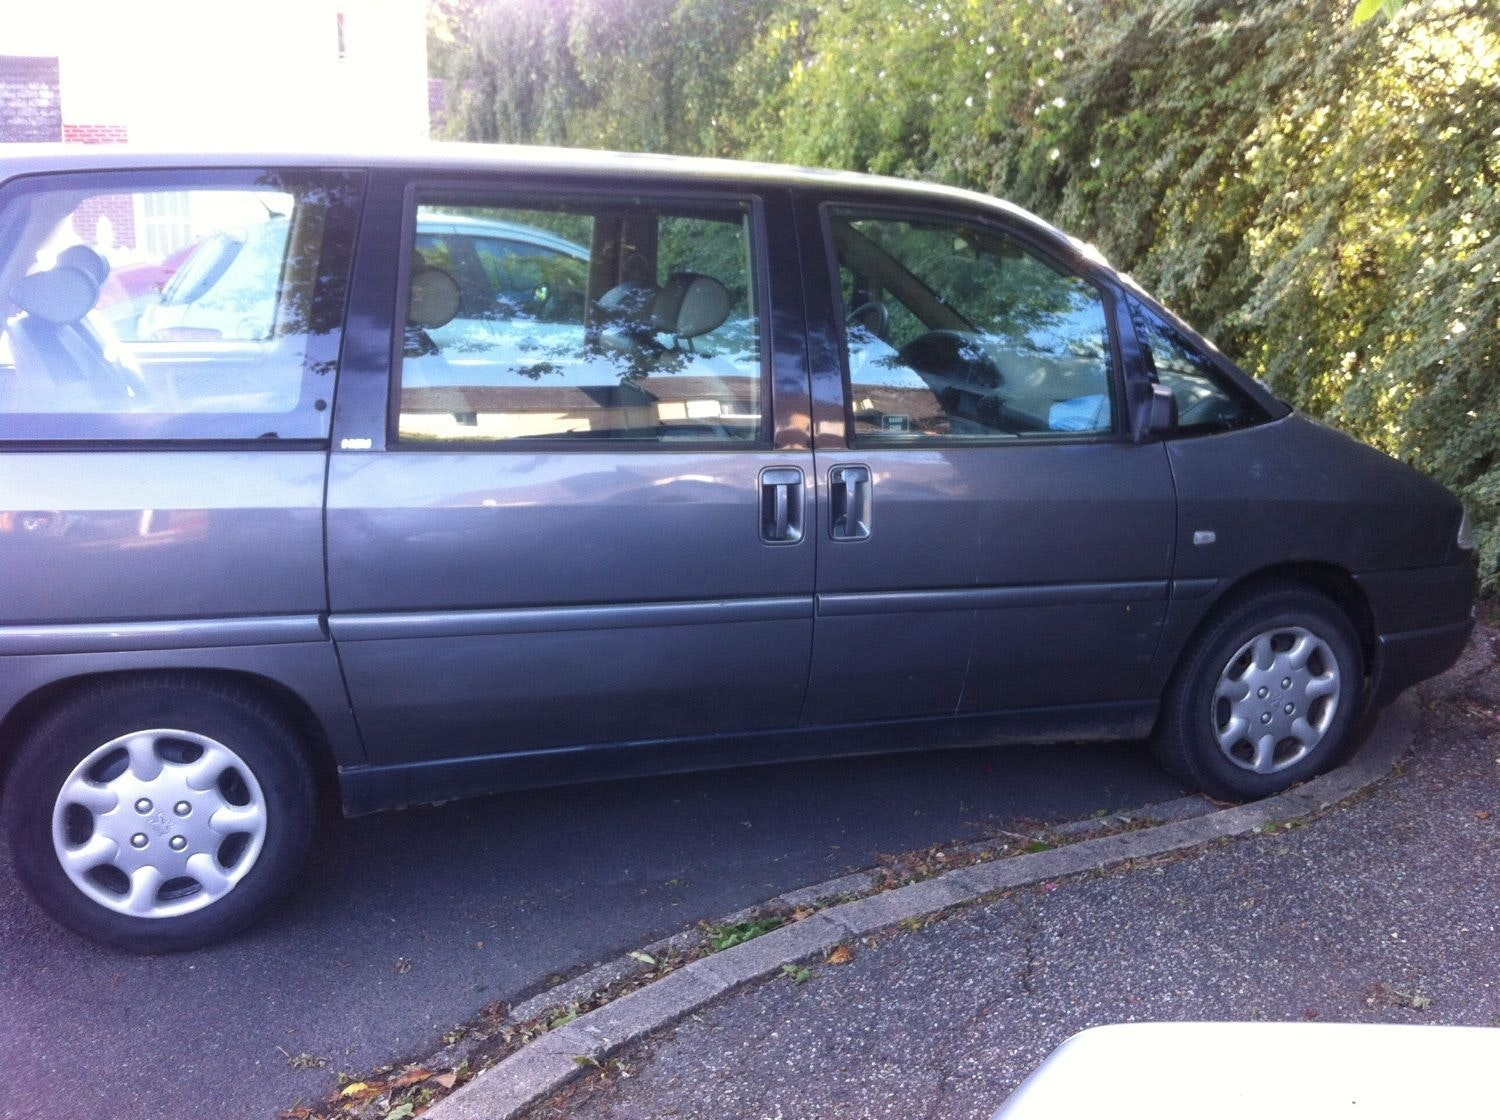 Peugeot 806 Hdi, 2000, Diesel, 7 places